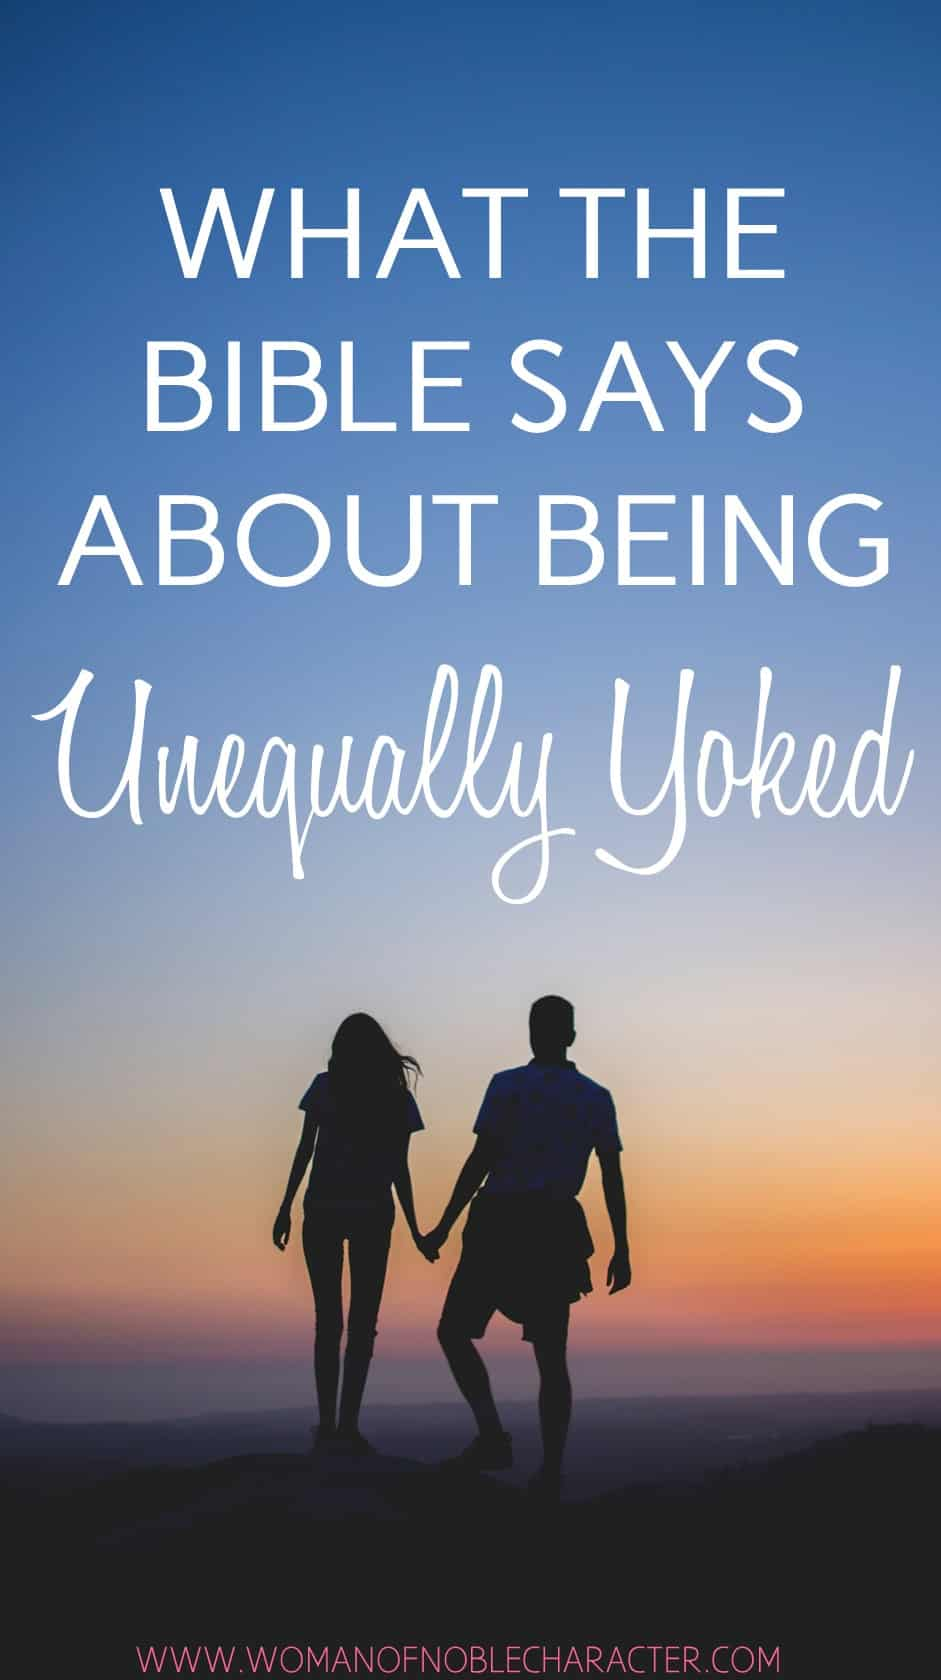 image couple holding hands at sunset with test what the Bible says about being unequally yoked for the post Unequally Yoked - What the Bible Says and Your Powerful Opportunity